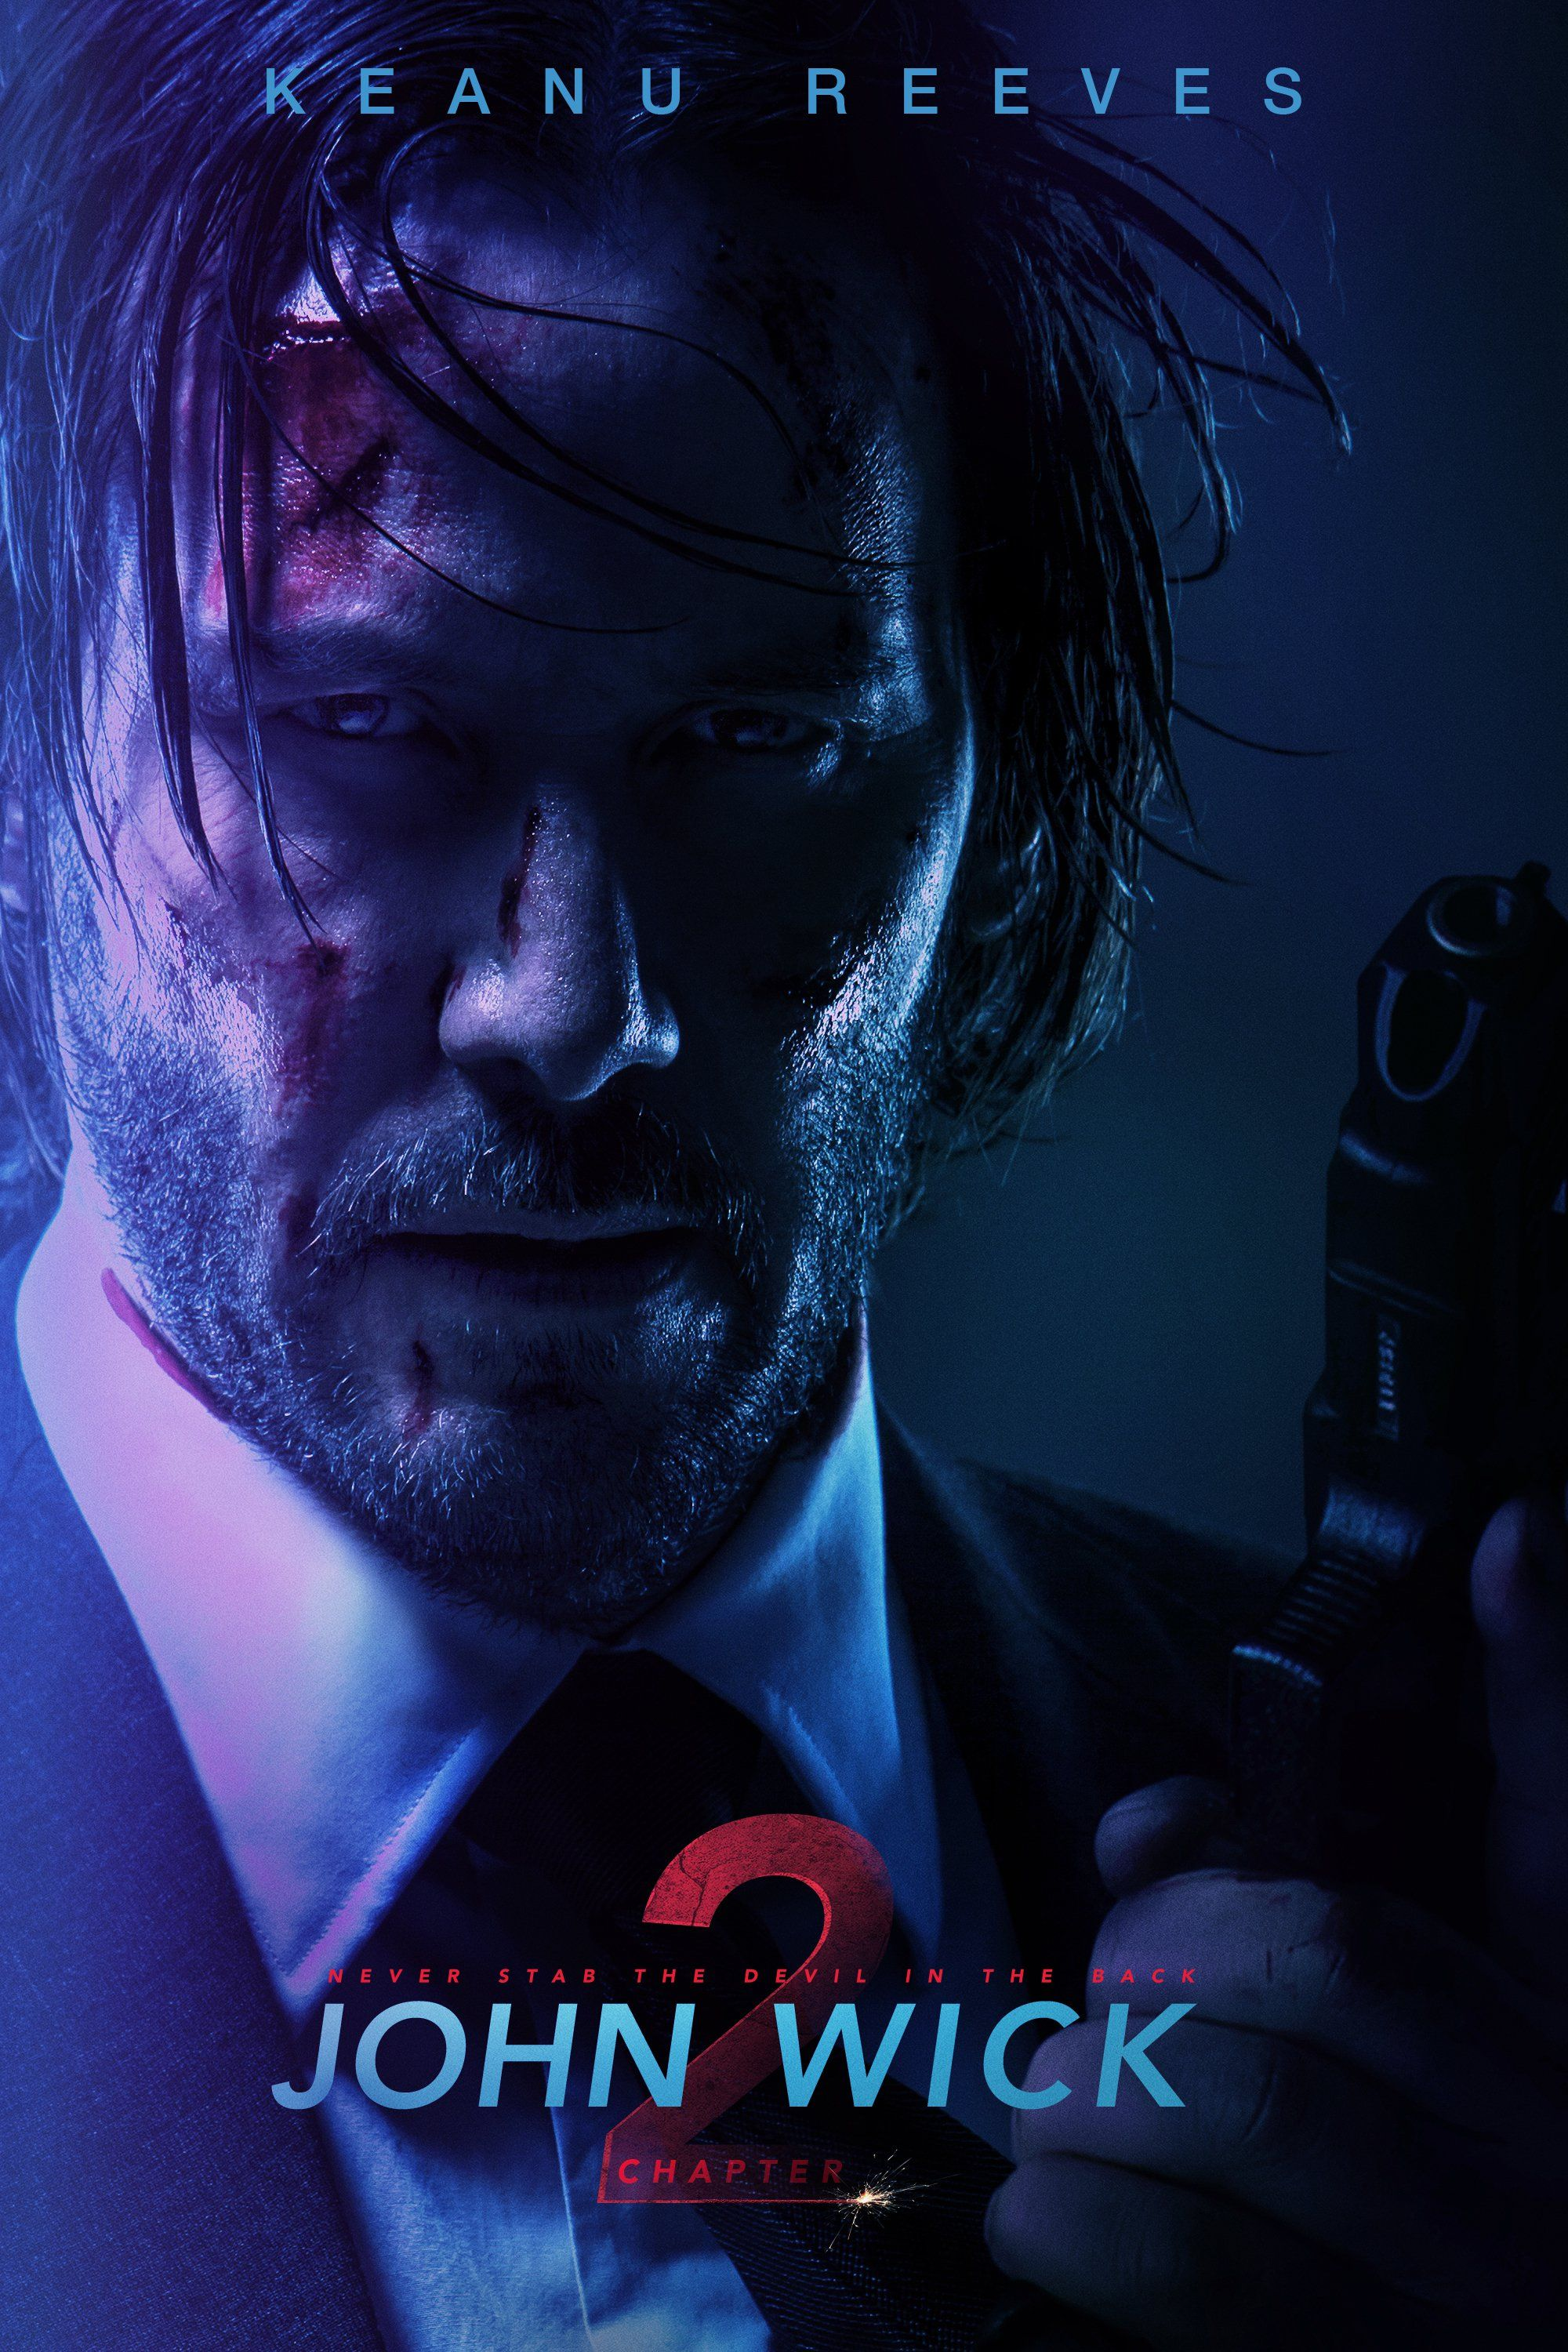 Pin By World Movies Online Ultra Hd 4K On Big Movies Online In 2019  John Wick 2 Movie, John -3007